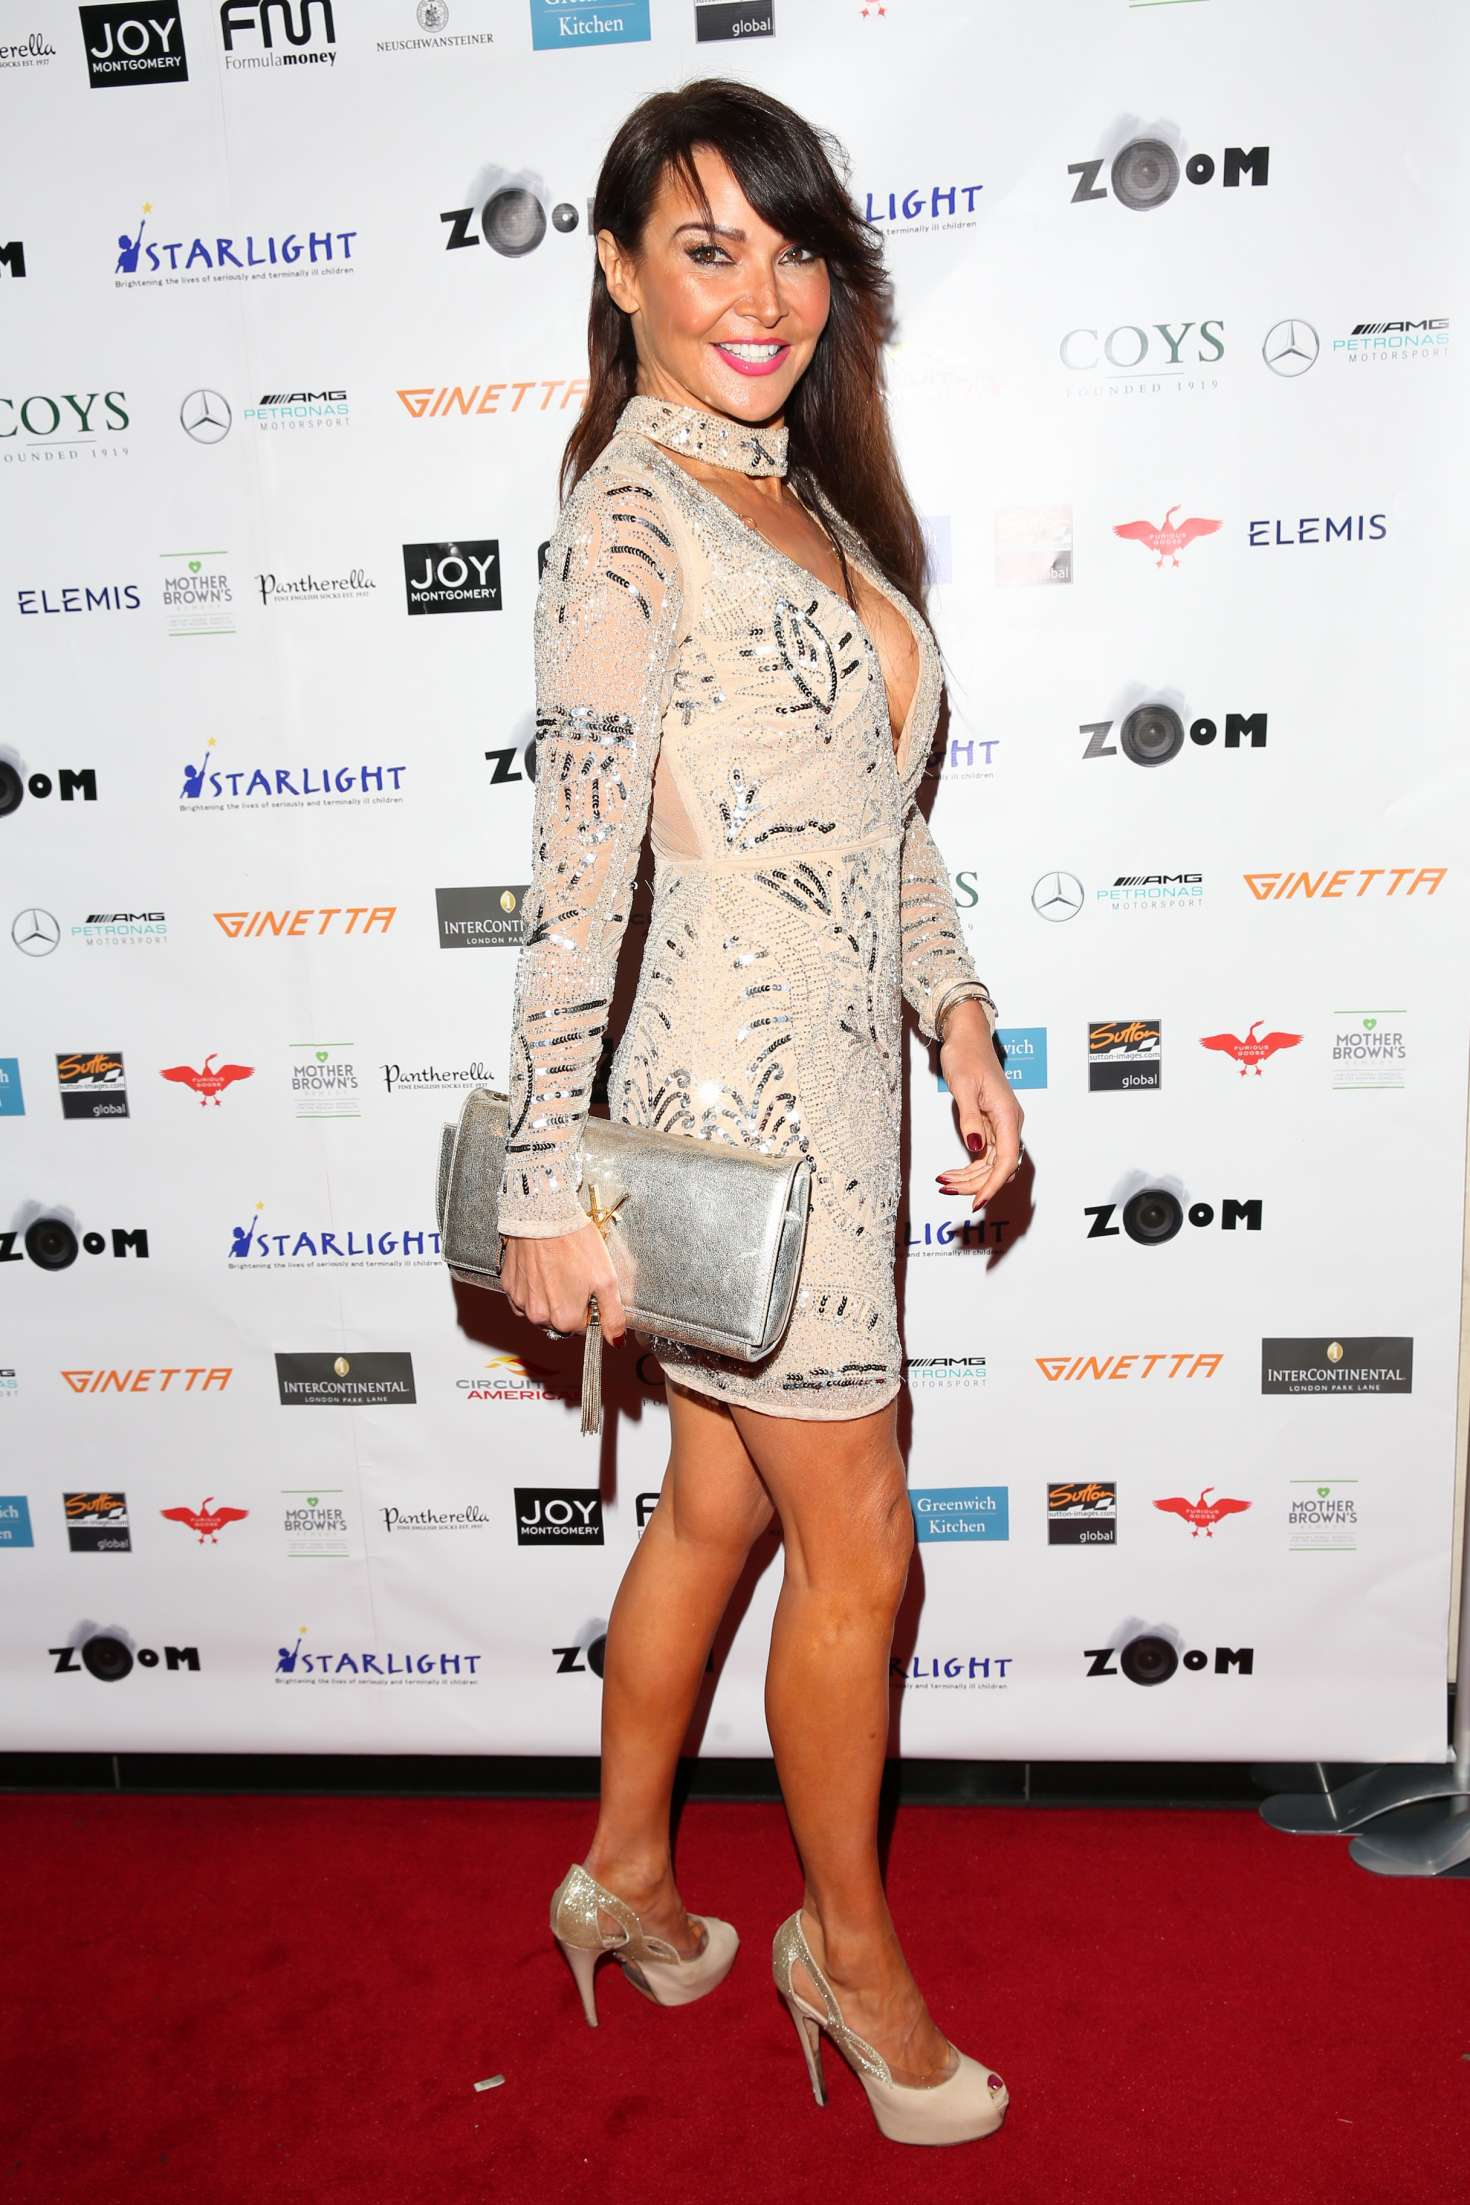 photo Lizzie cundy at zoom auction charity gala in london